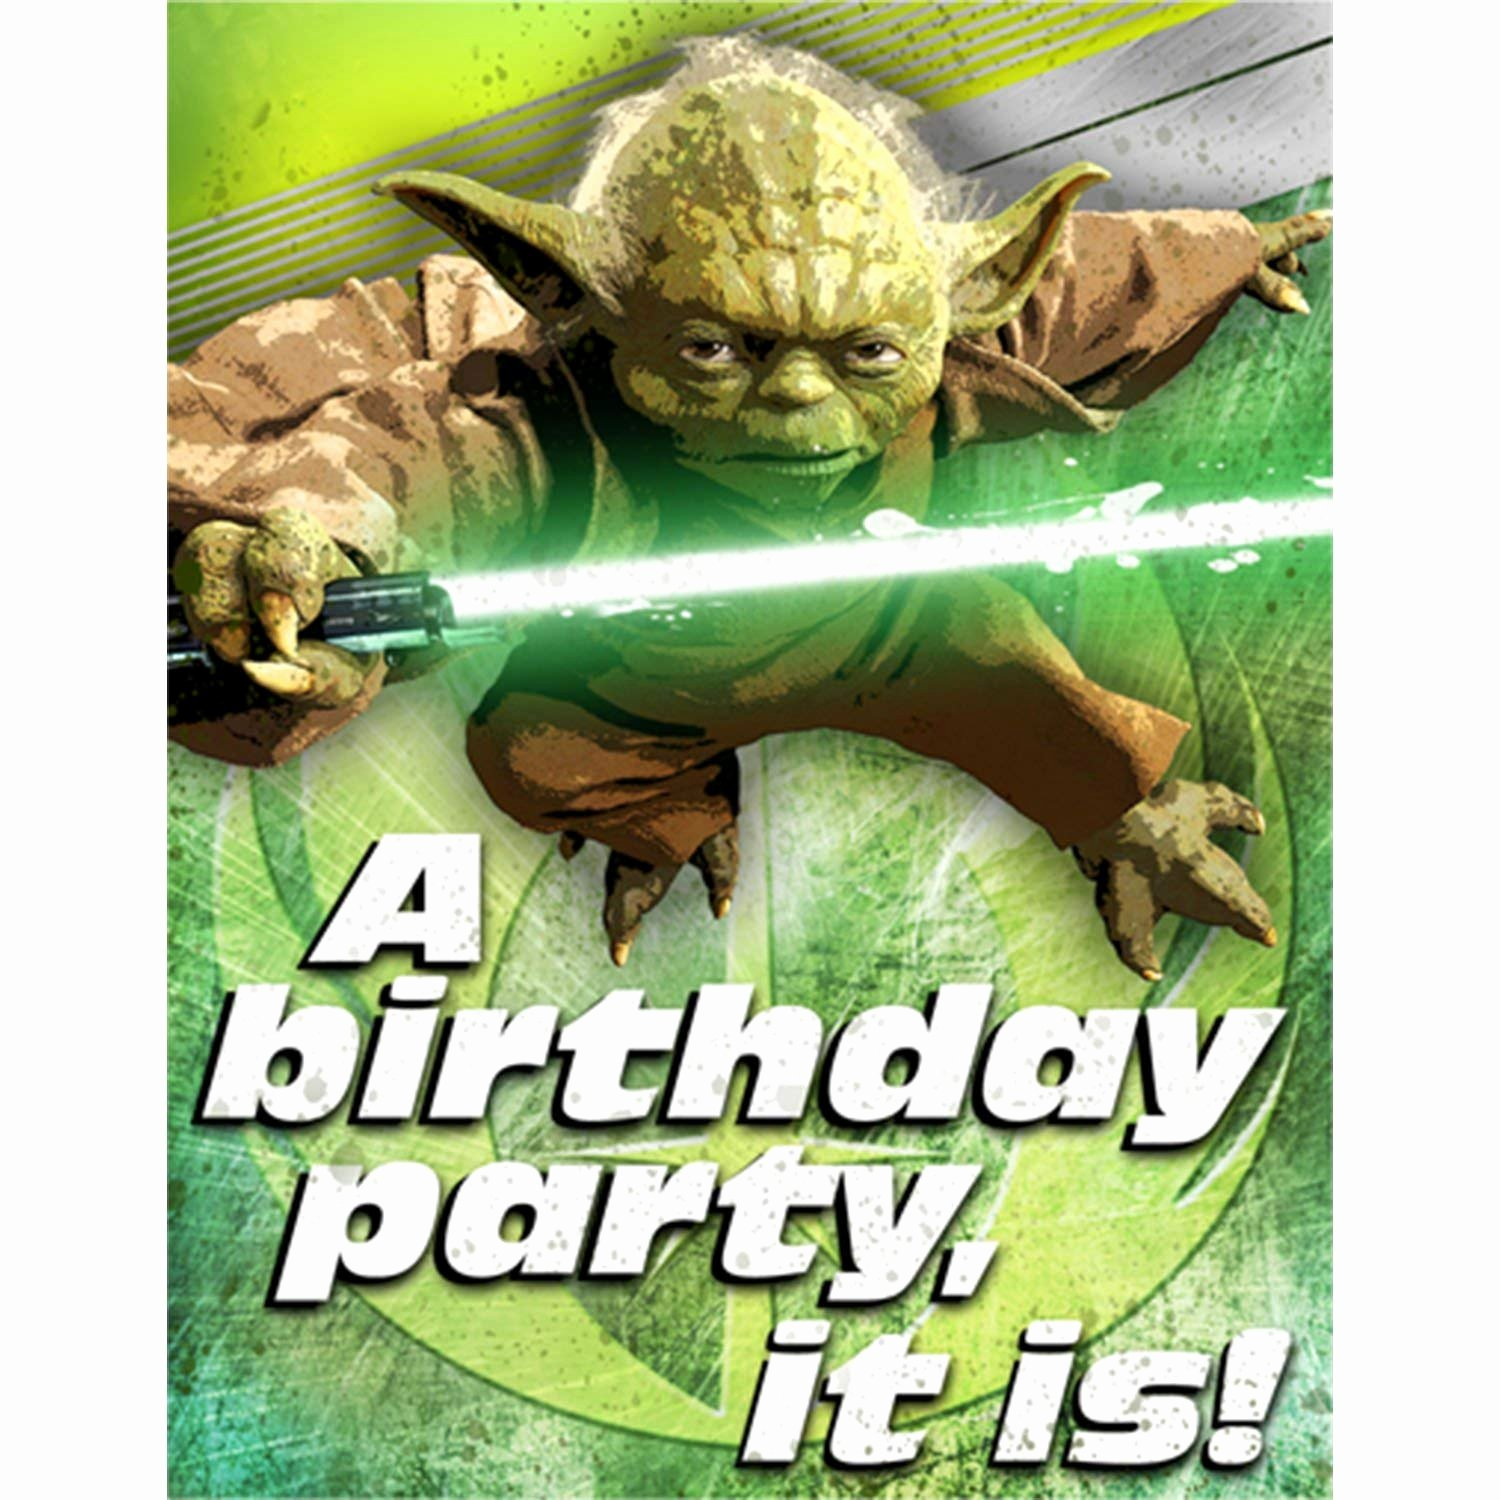 Star Wars Birthday Invitations Unique Star Wars Birthday Party Invitations